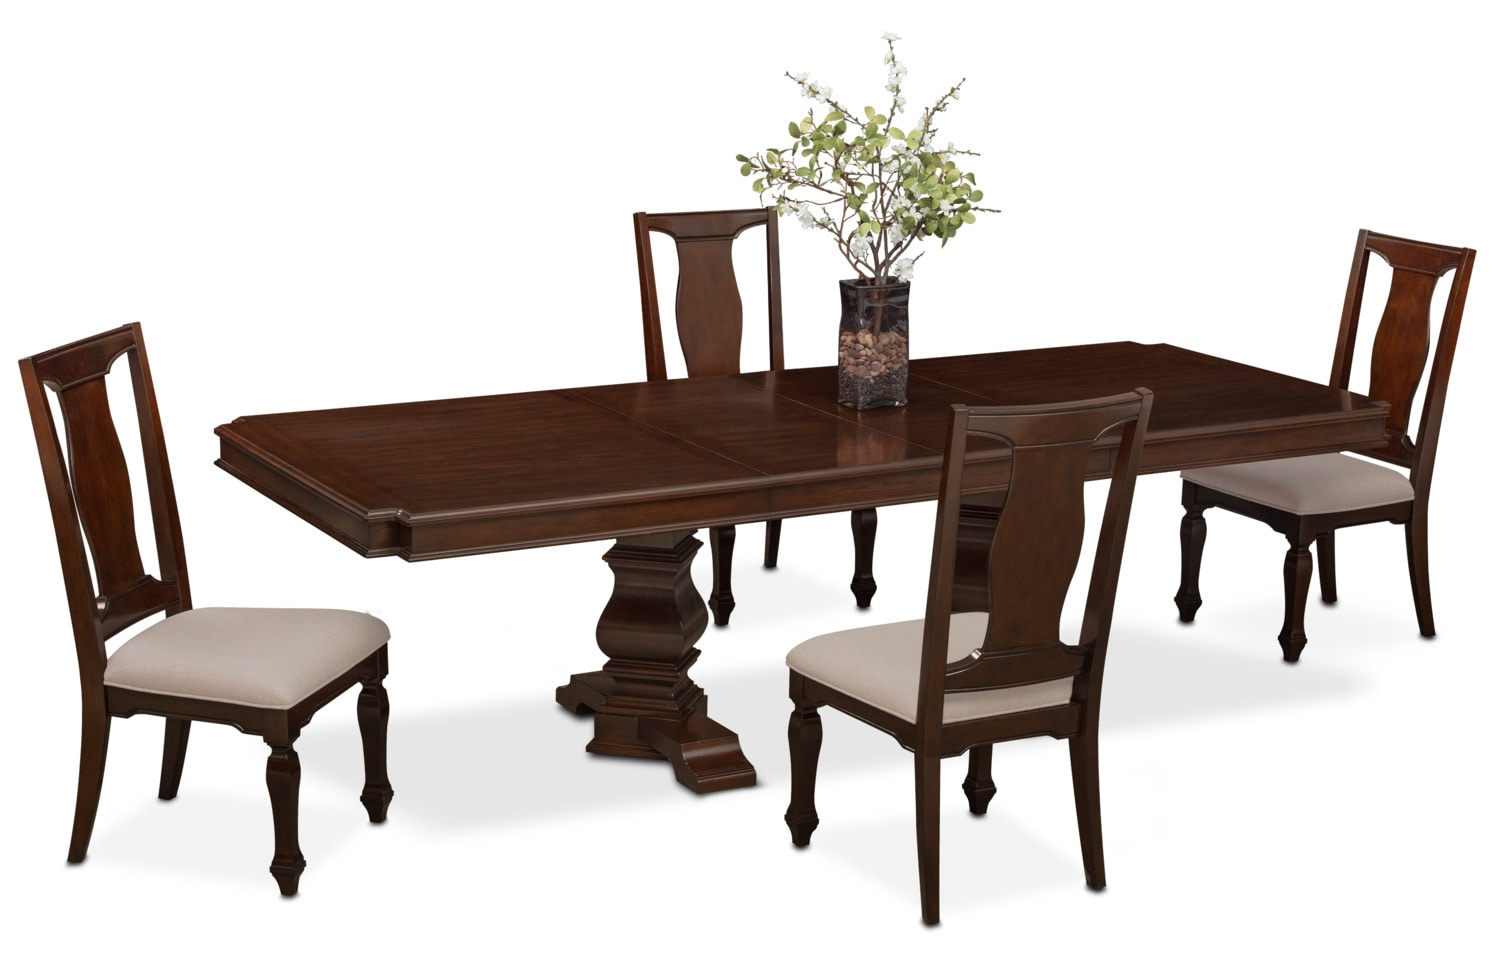 Dining Room Furniture - Vienna Rectangular Dining Table and 4 Dining Chairs